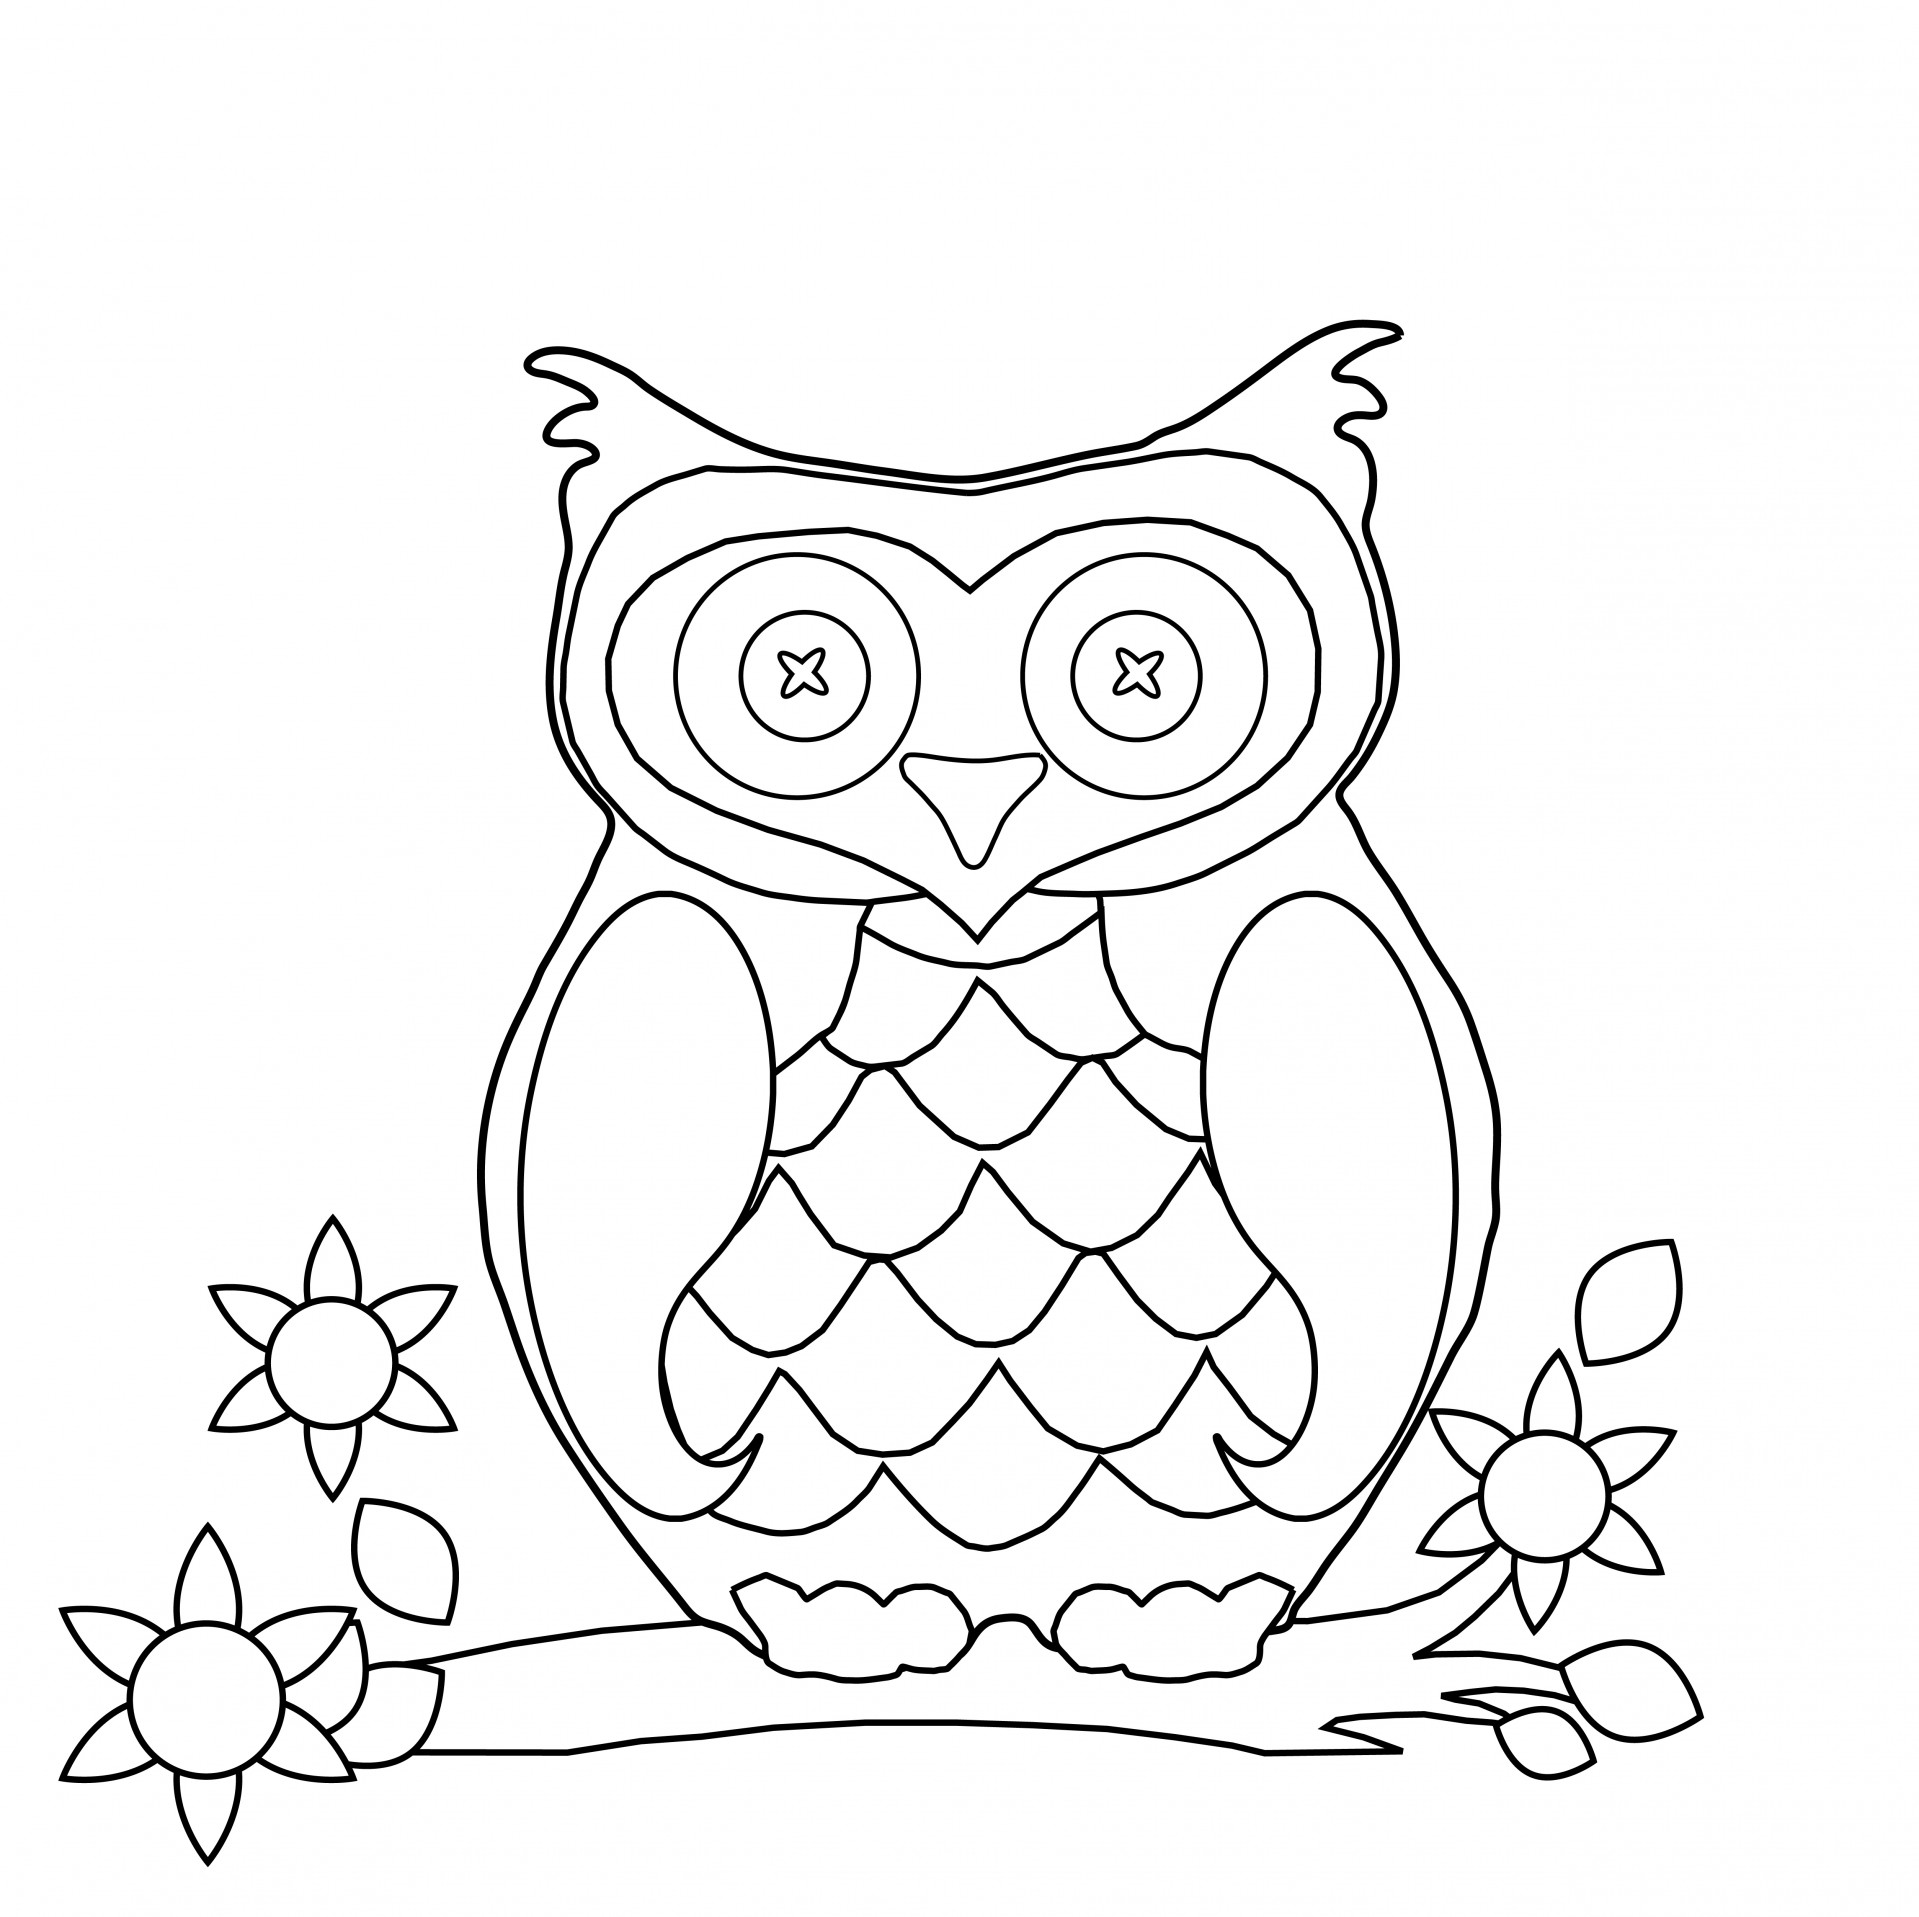 for coloring book get this butterfly coloring pages to print for adults 90037 coloring for book